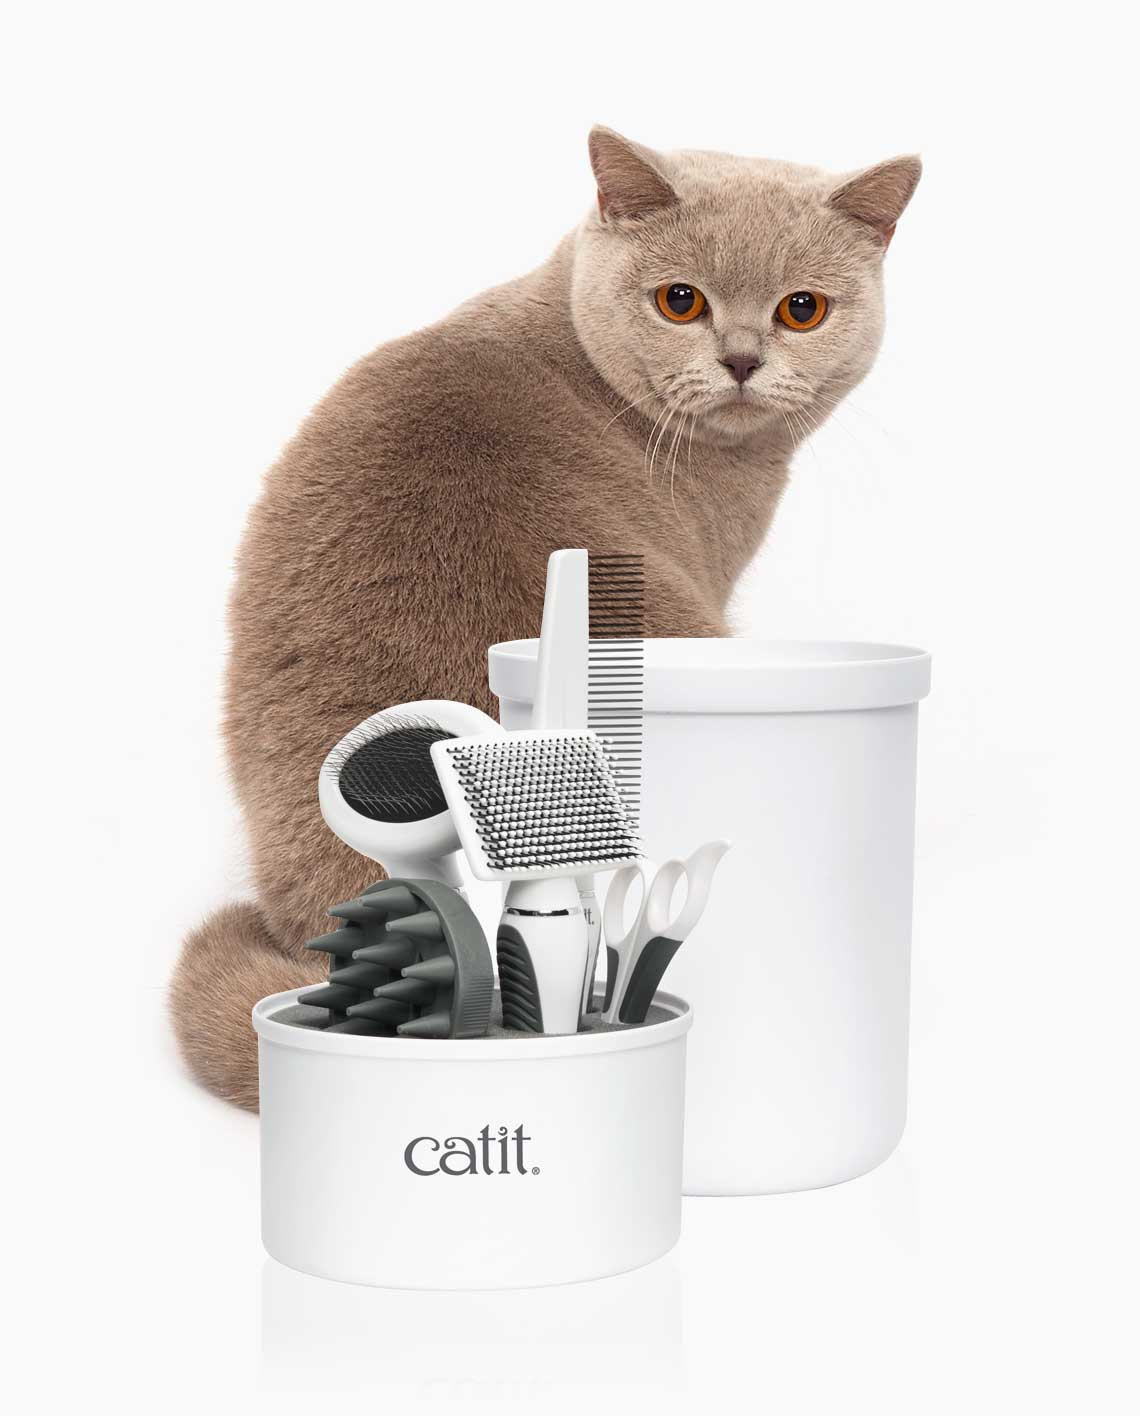 Beautiful Shorthaired Cat behind Catit Grooming Kit